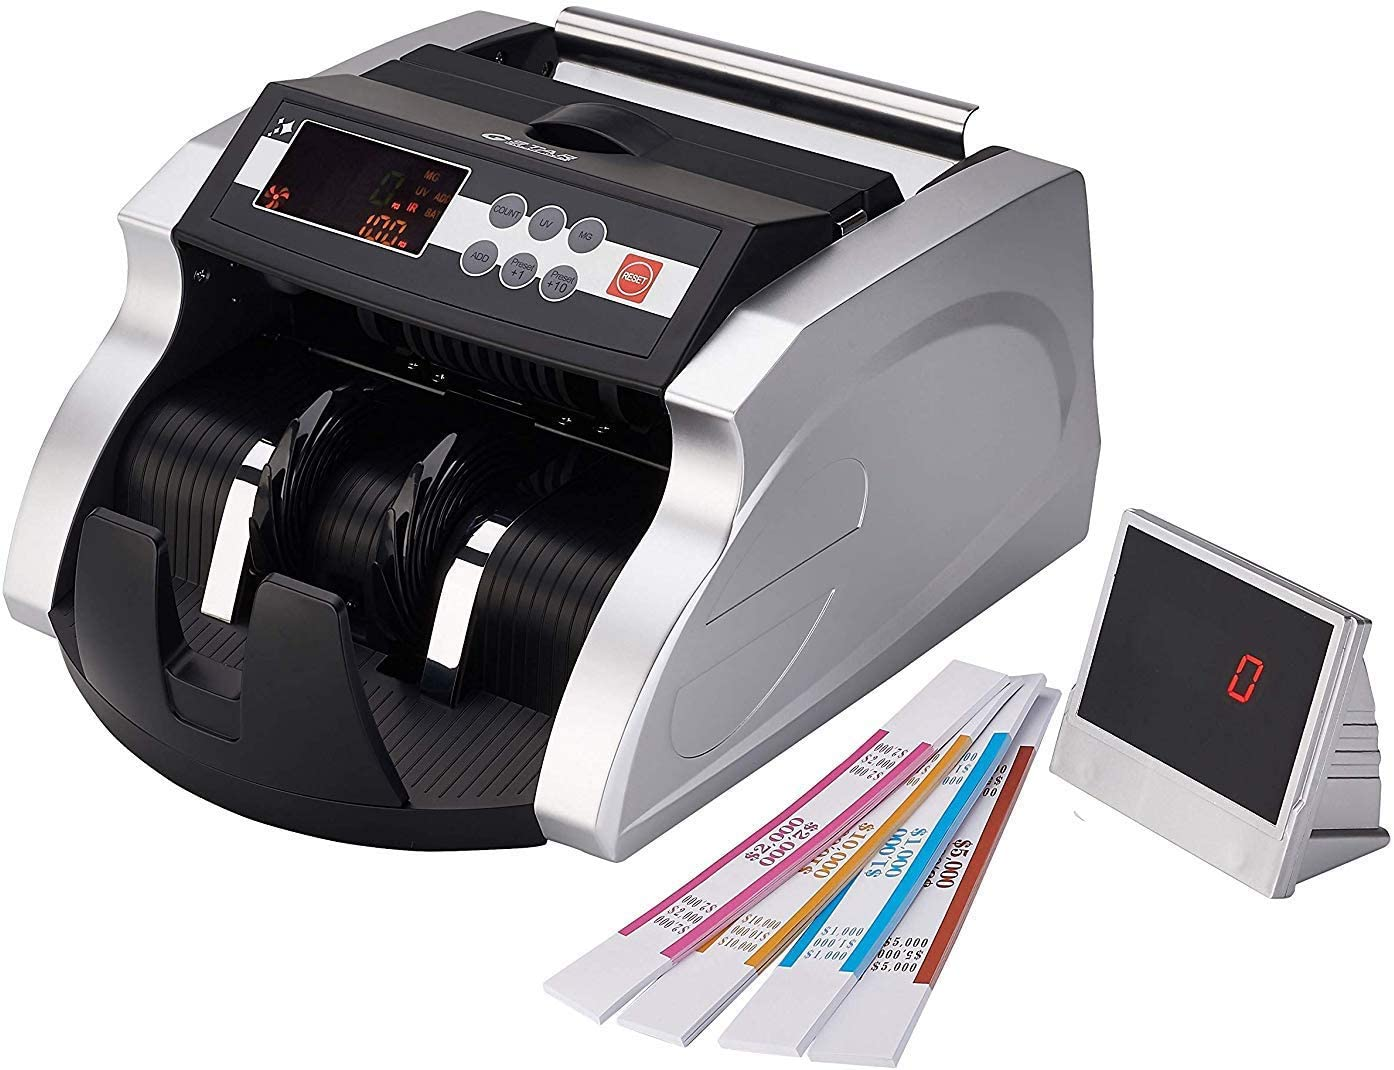 GStar Money Counter with UV/MG/IR/DD Counterfeit Bill Detection Plus  External Display and 30 Year Warranty